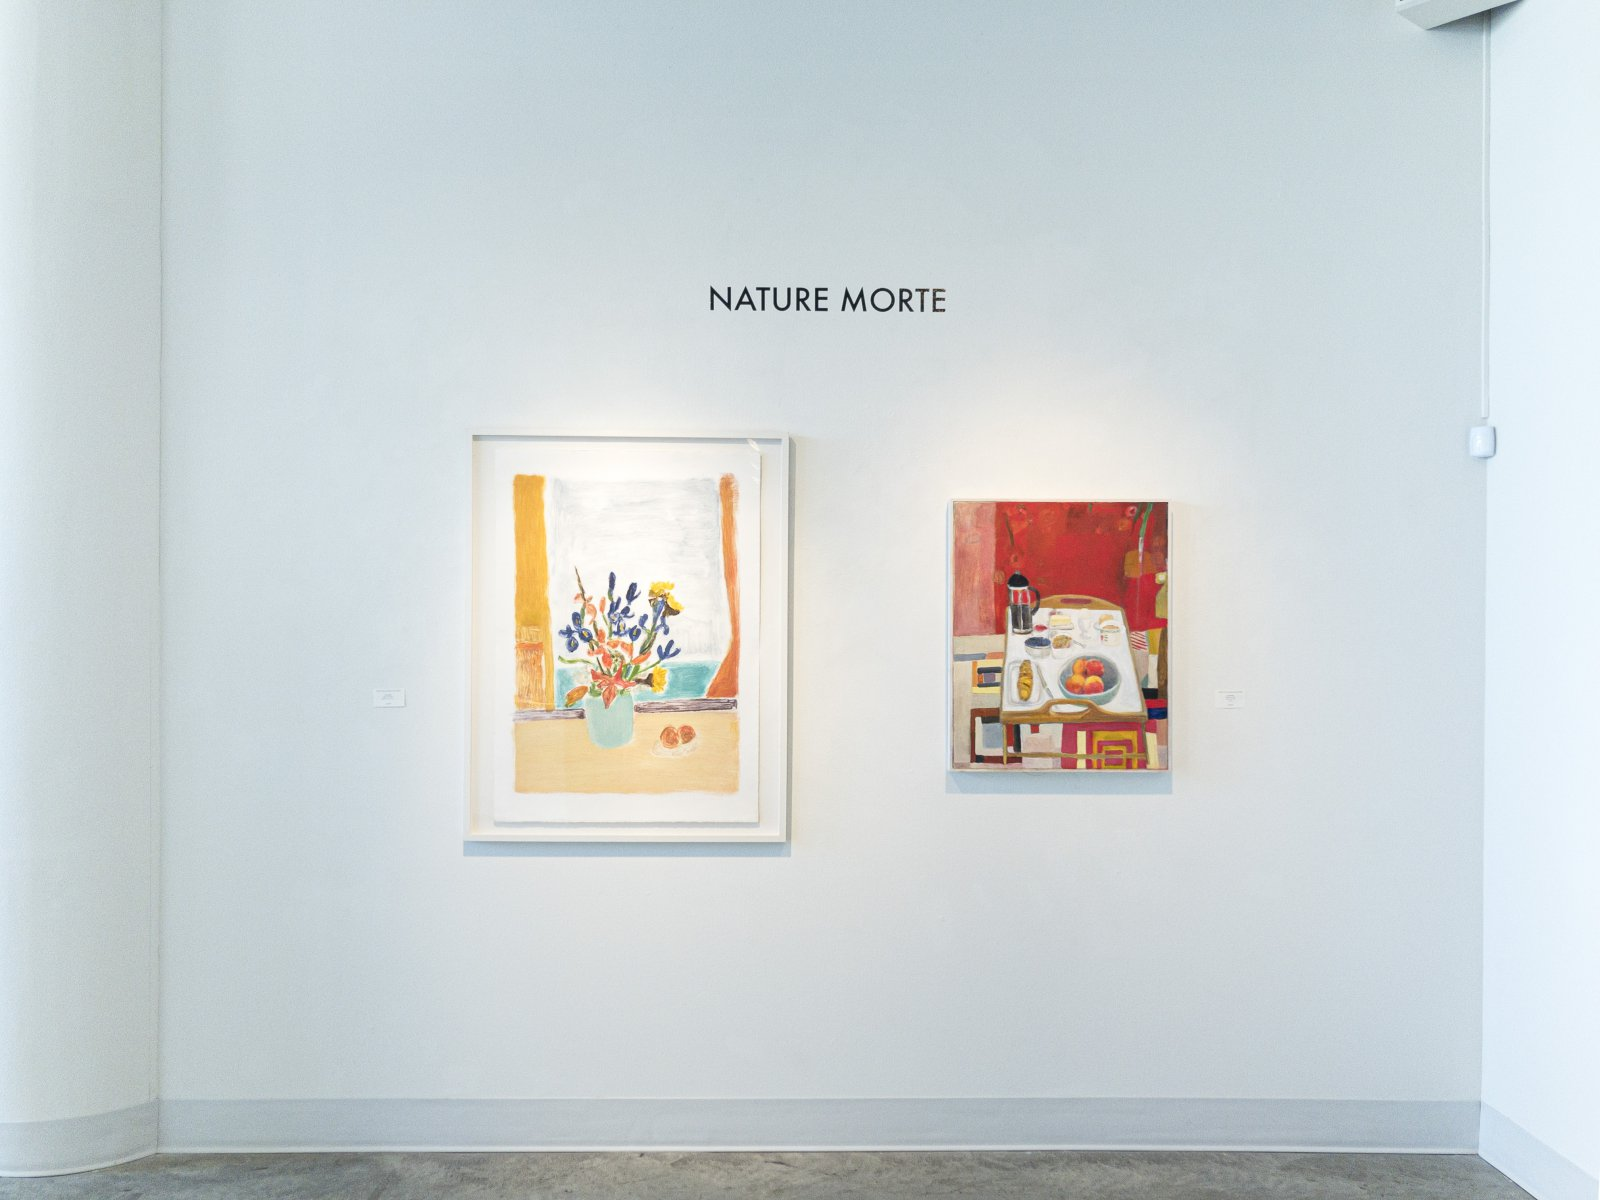 Nature Morte: An Exhibition of Contemporary Still Life Gallery. Photo courtesy of the Tory Folliard Gallery.